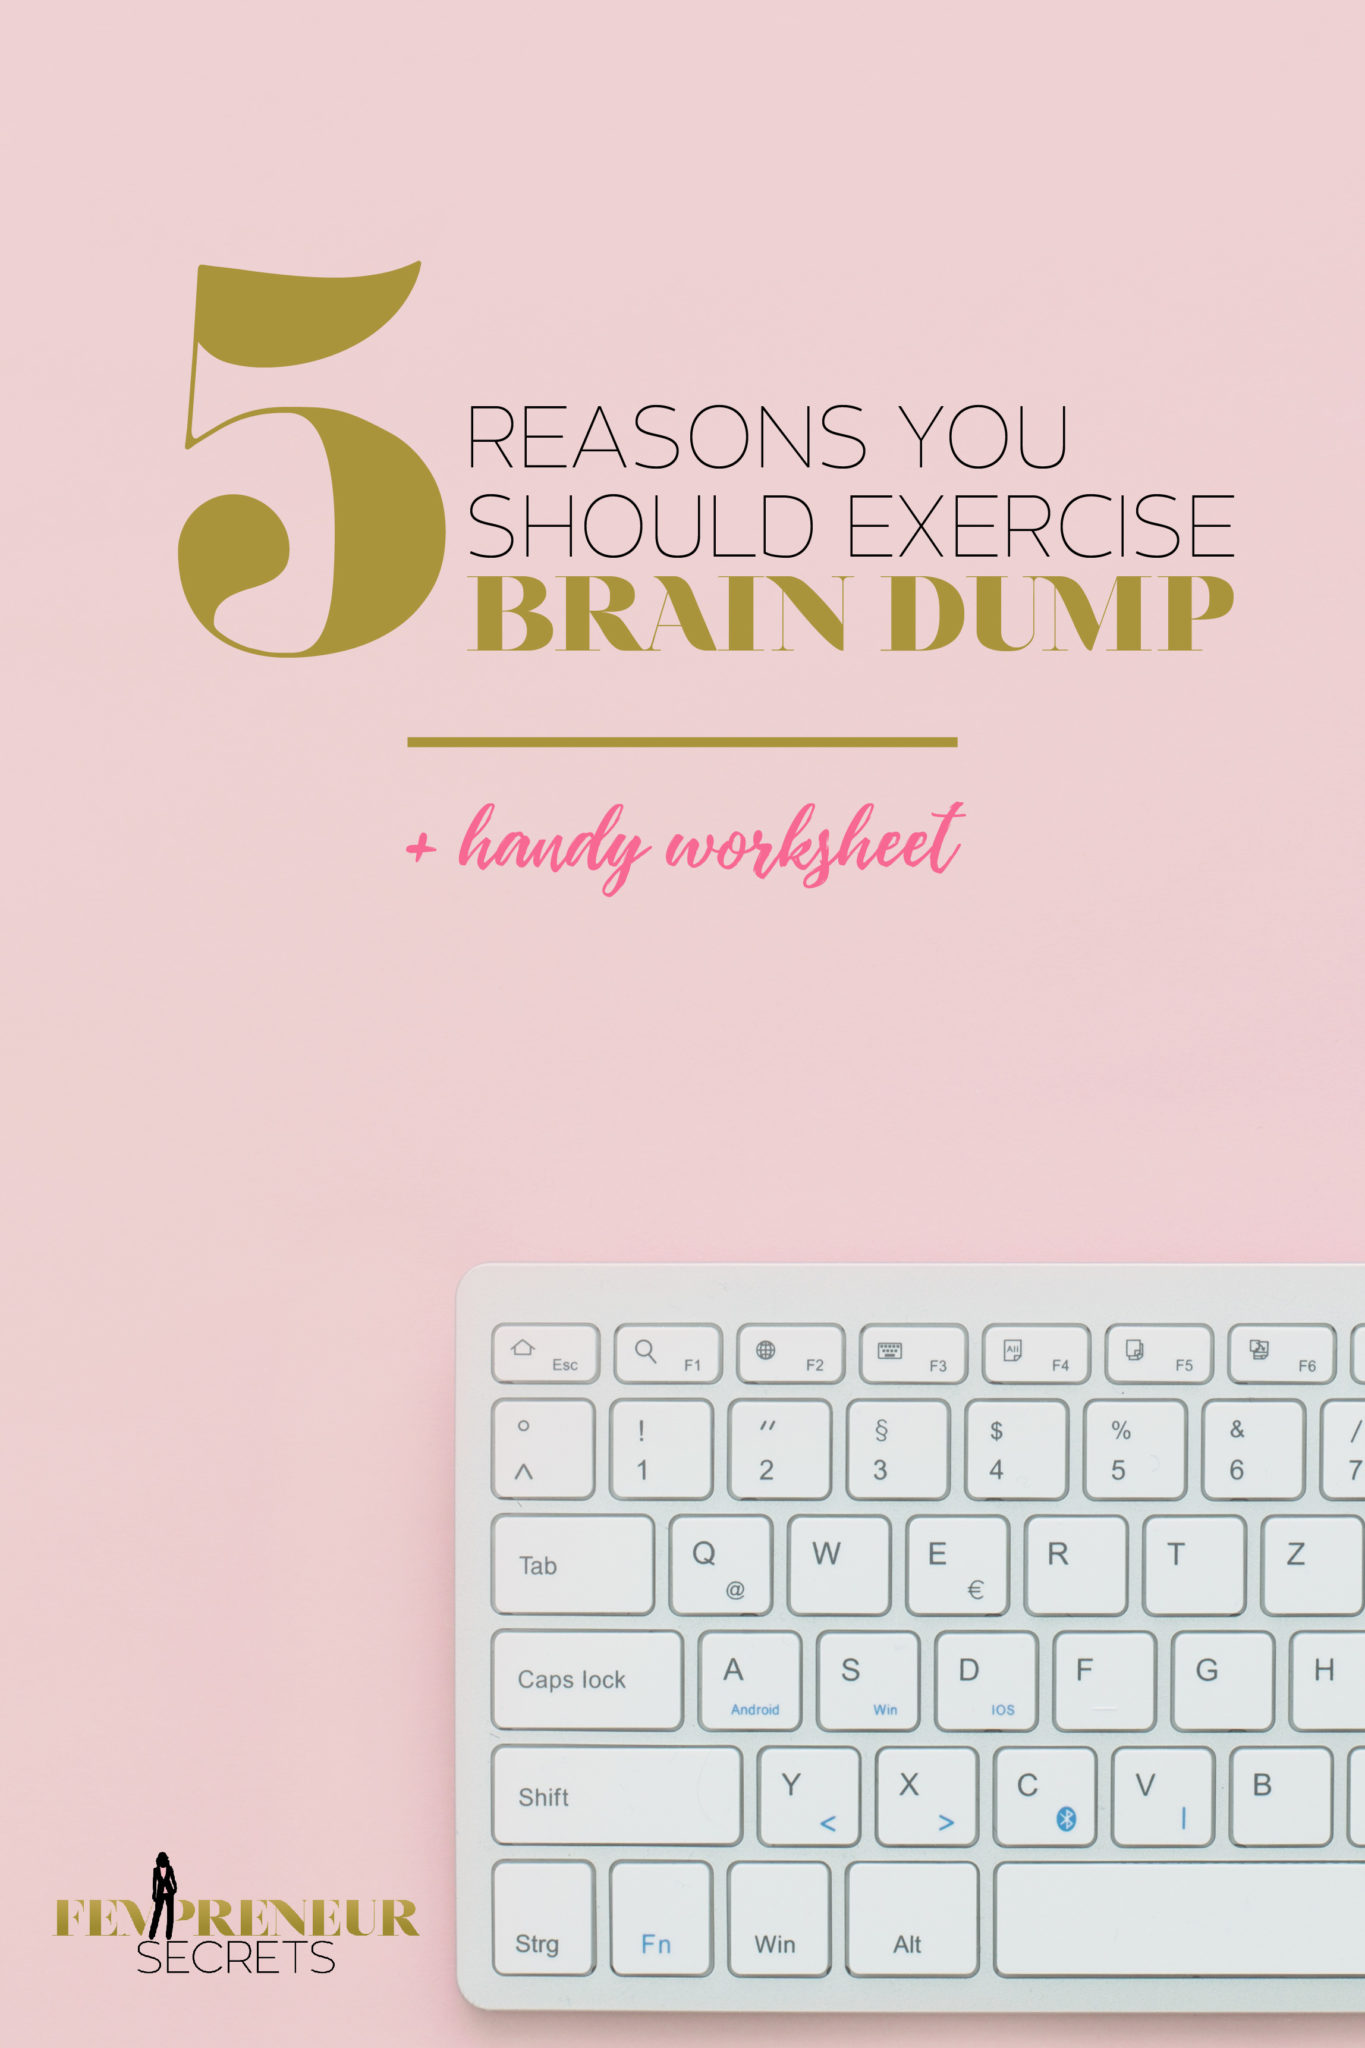 photograph relating to Brain Dump Worksheet named Top secret Record #003: 5 Good reasons Why Your self Ought to Physical fitness Head